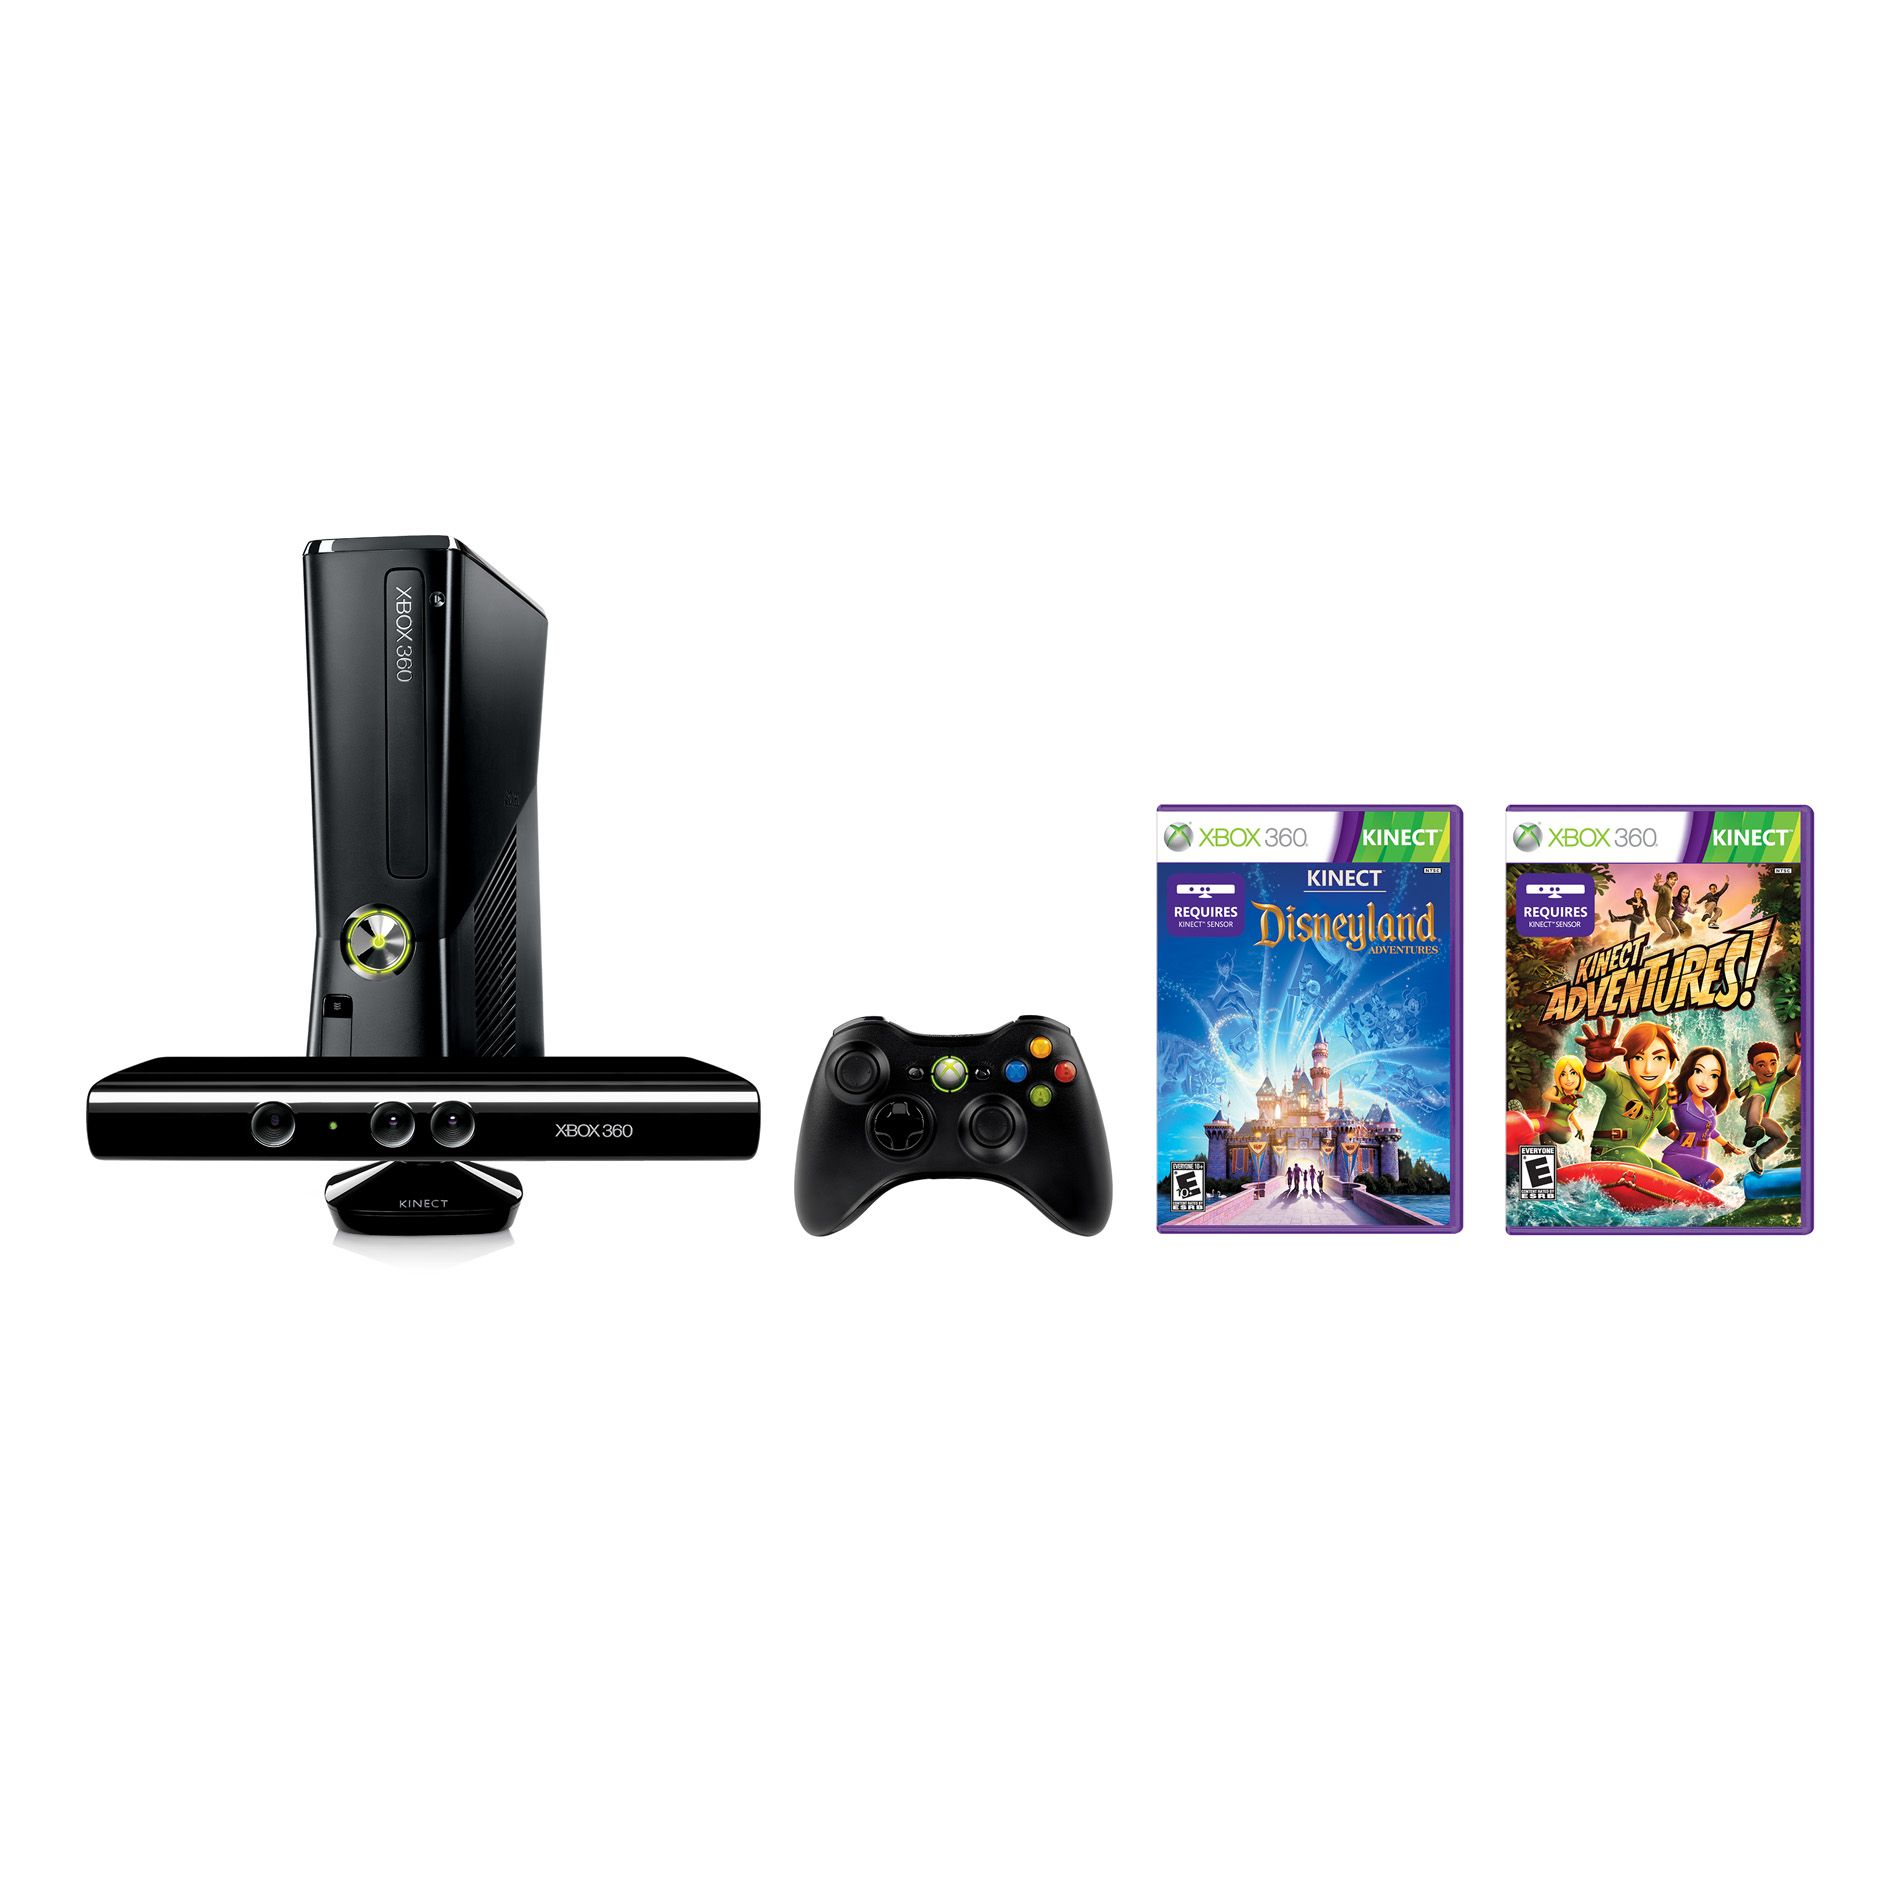 Microsoft Xbox 360S 4GB Kinect Holiday Console Bundle Black No hard drive